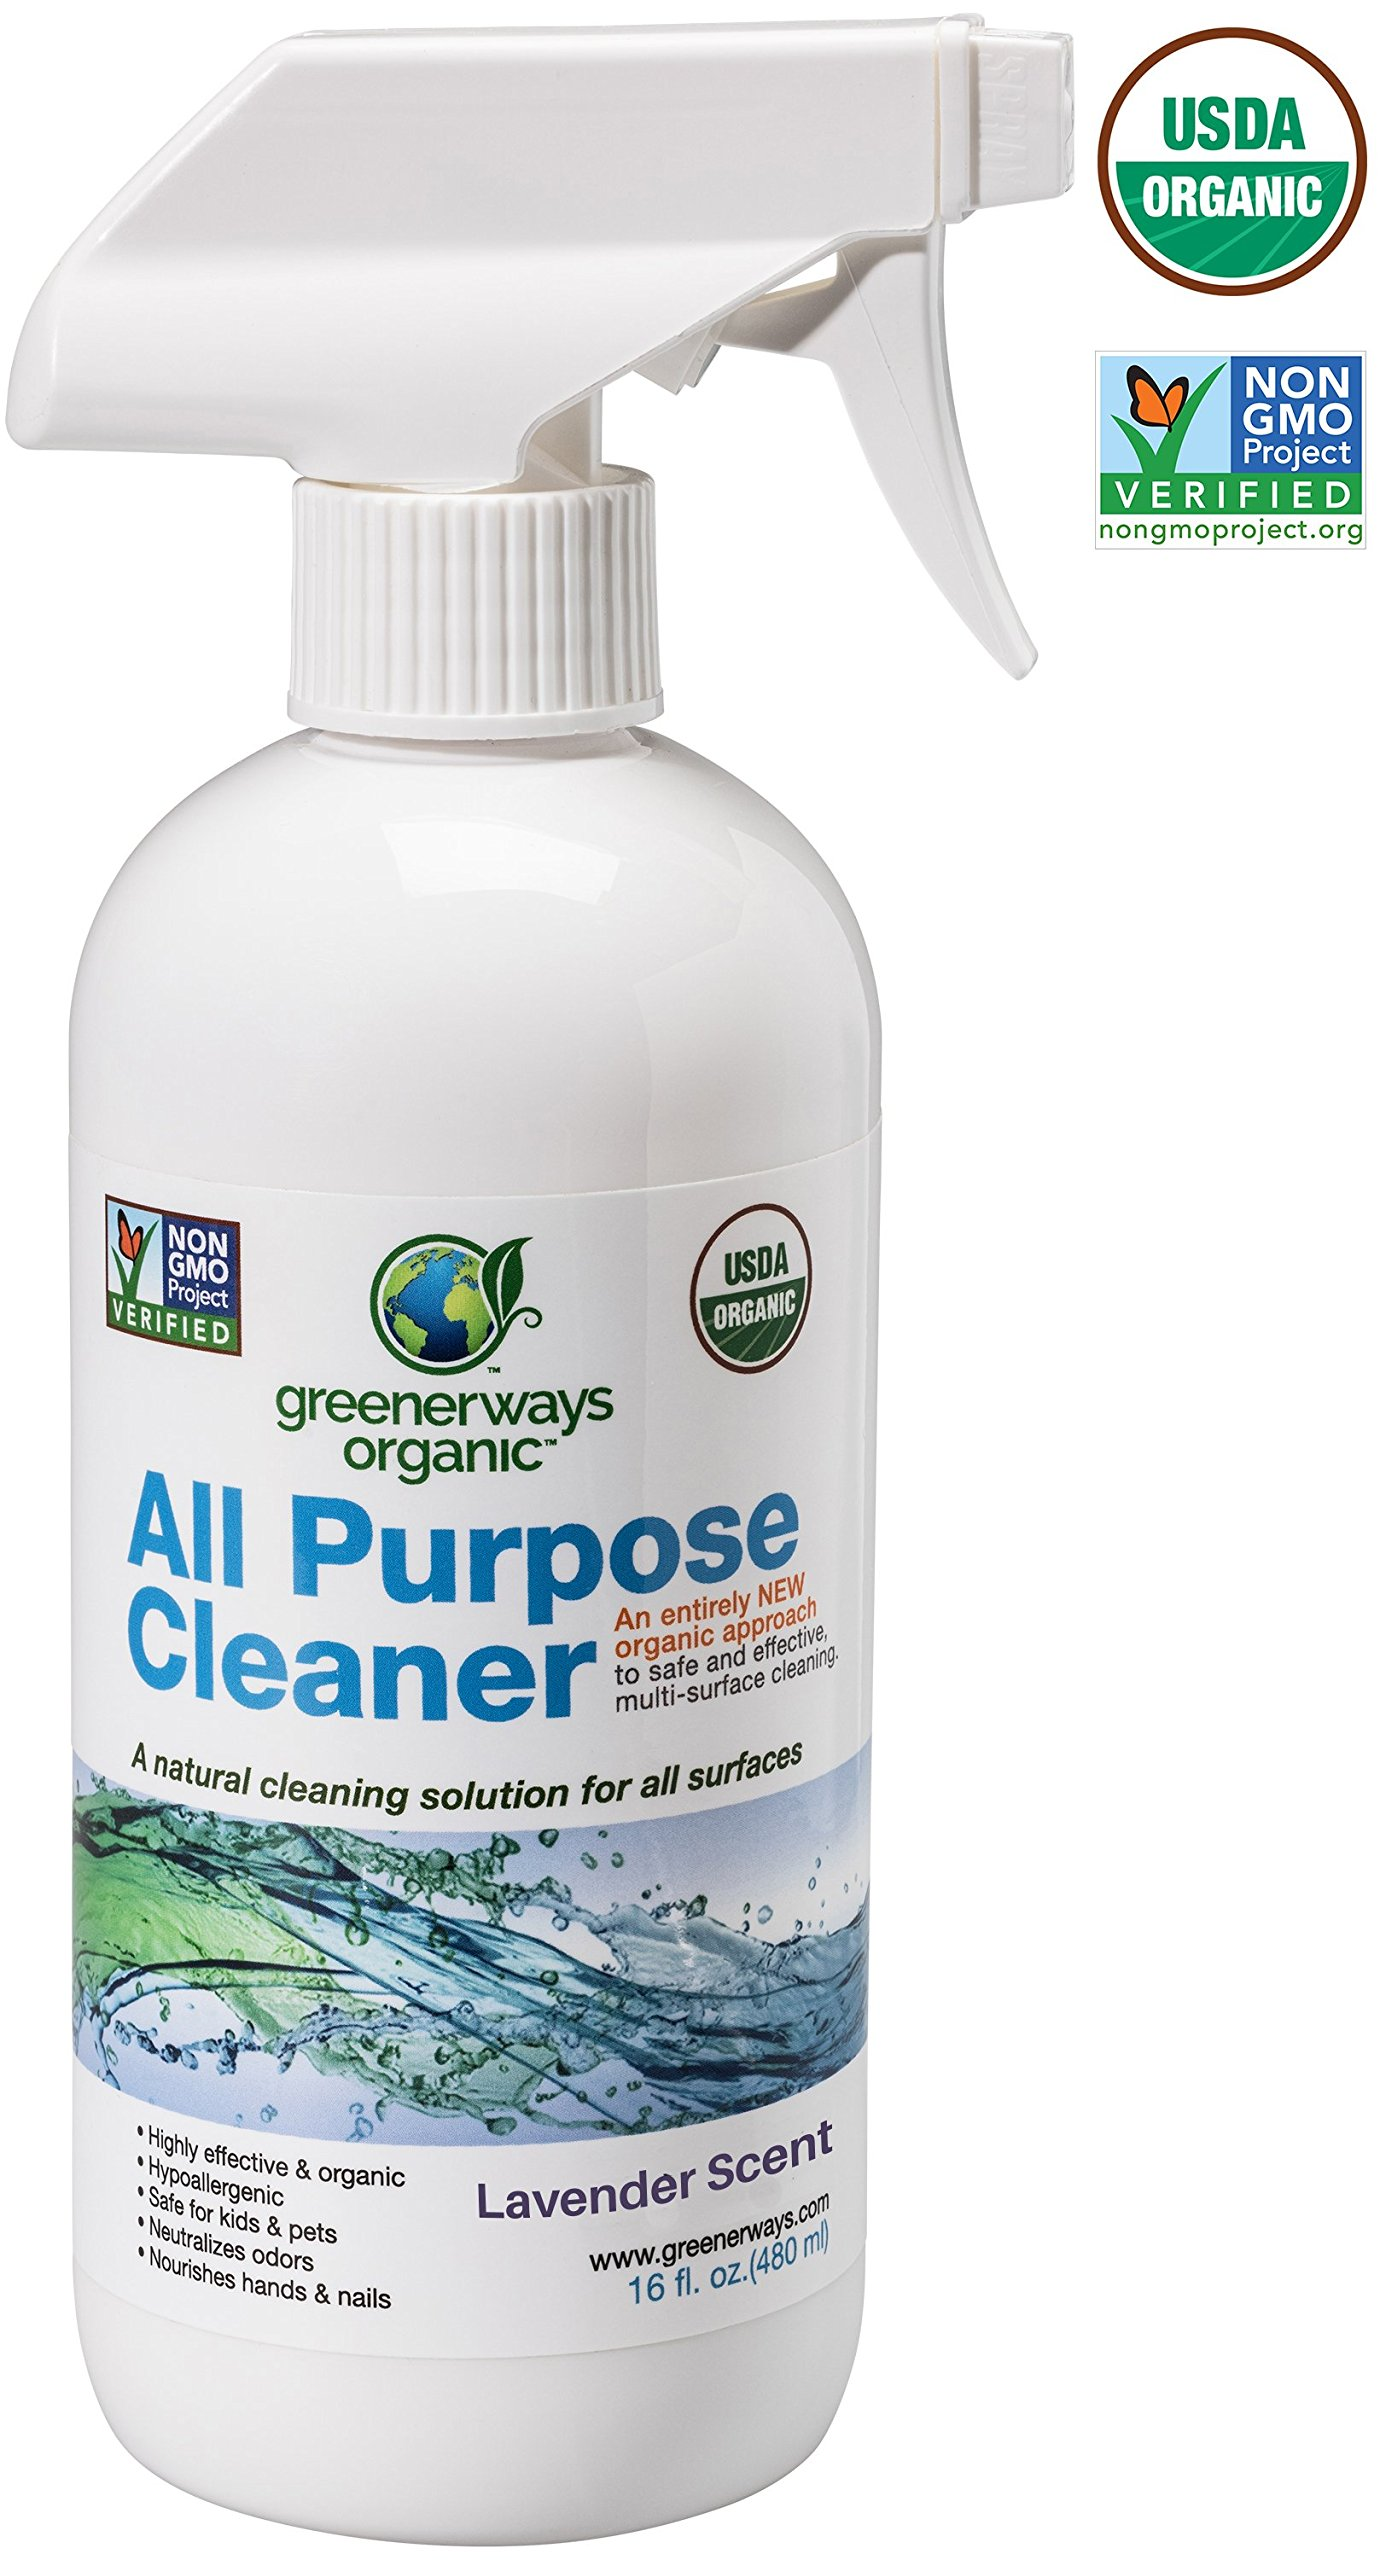 Greenerways Organic All-Purpose Lavender Scented Cleaner, Natural, USDA Organic, Non-GMO, Best Household Multi Surface Spray Cleaner for Home, Glass, Kitchen, Bathroom, Shower, Window, Streak Free